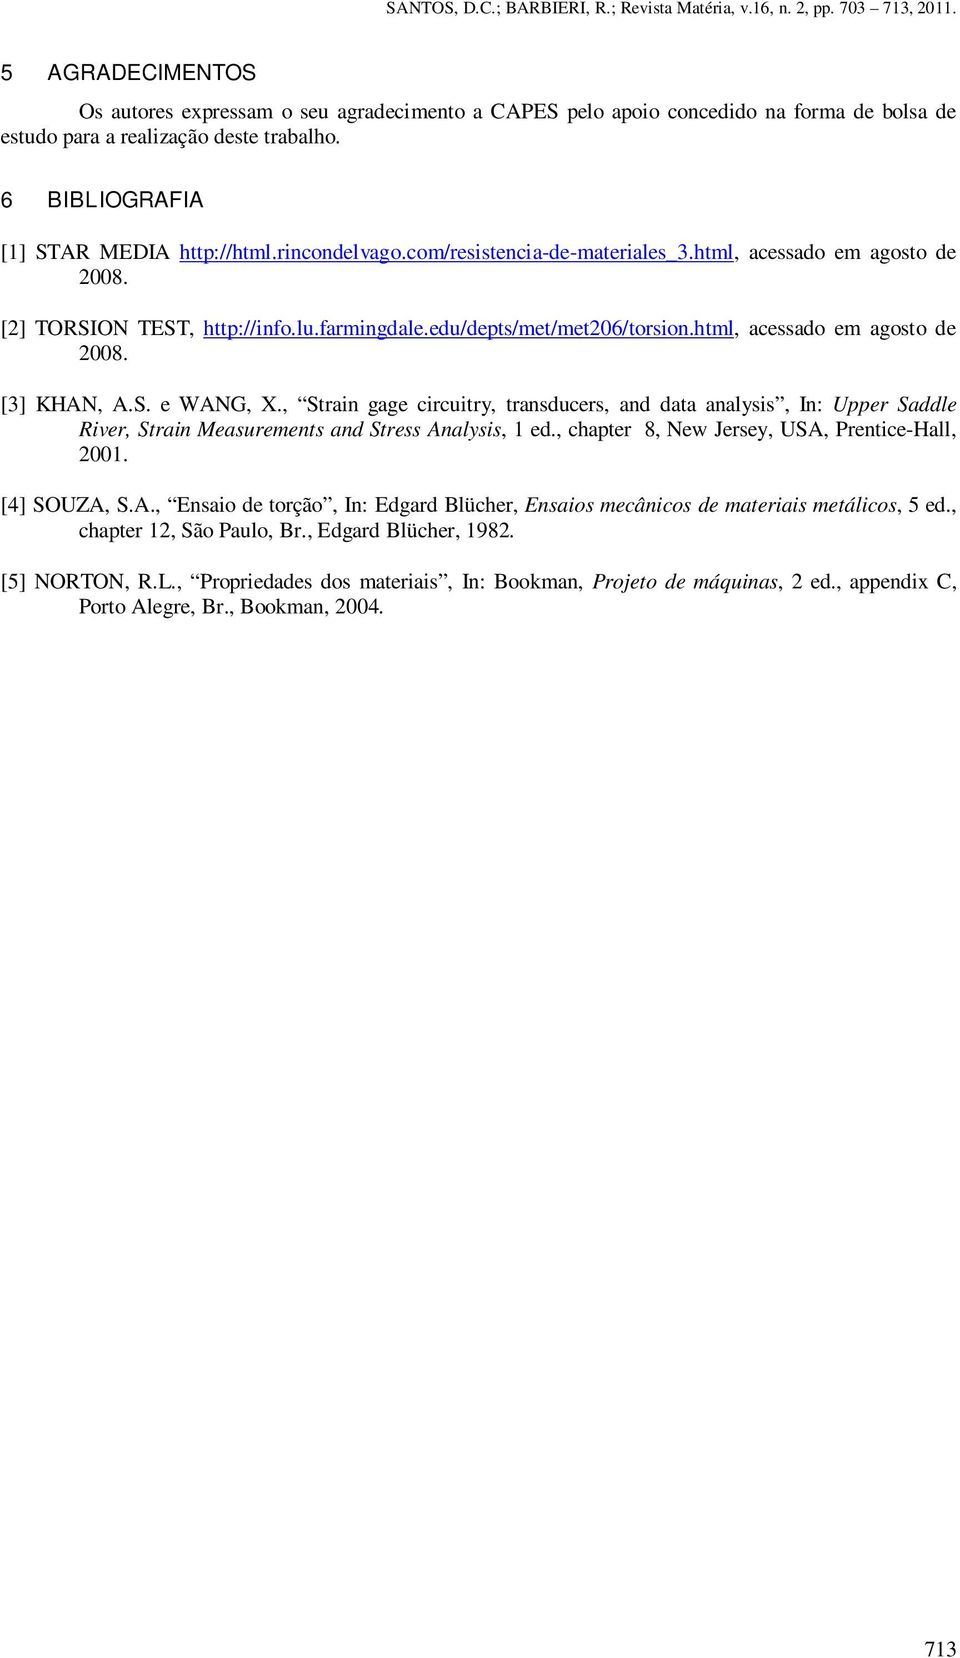 S. e WANG, X., Strain gage circuitry, transducers, and data analysis, In: Upper Saddle River, Strain Measurements and Stress Analysis, 1 ed., chapter 8, New Jersey, USA, Prentice-Hall, 2001.